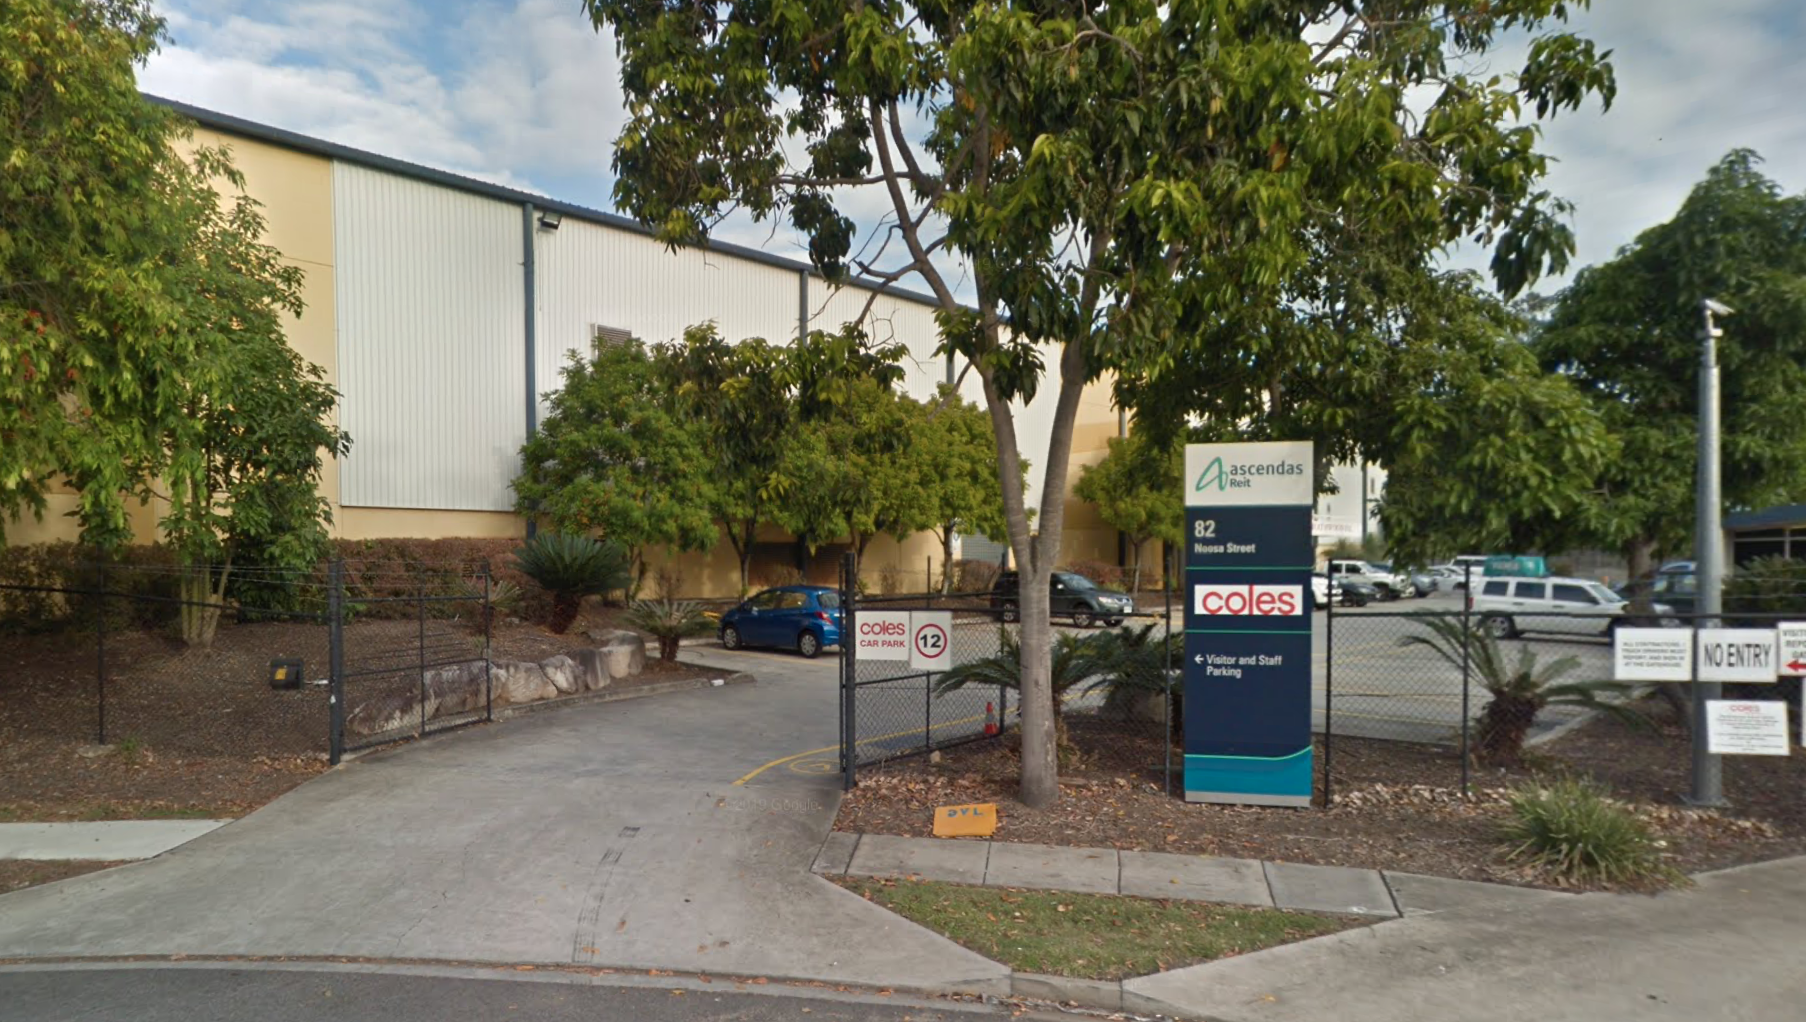 82 Noosa Street, which is being disposed of by Ascendas REIT. (Google Maps)